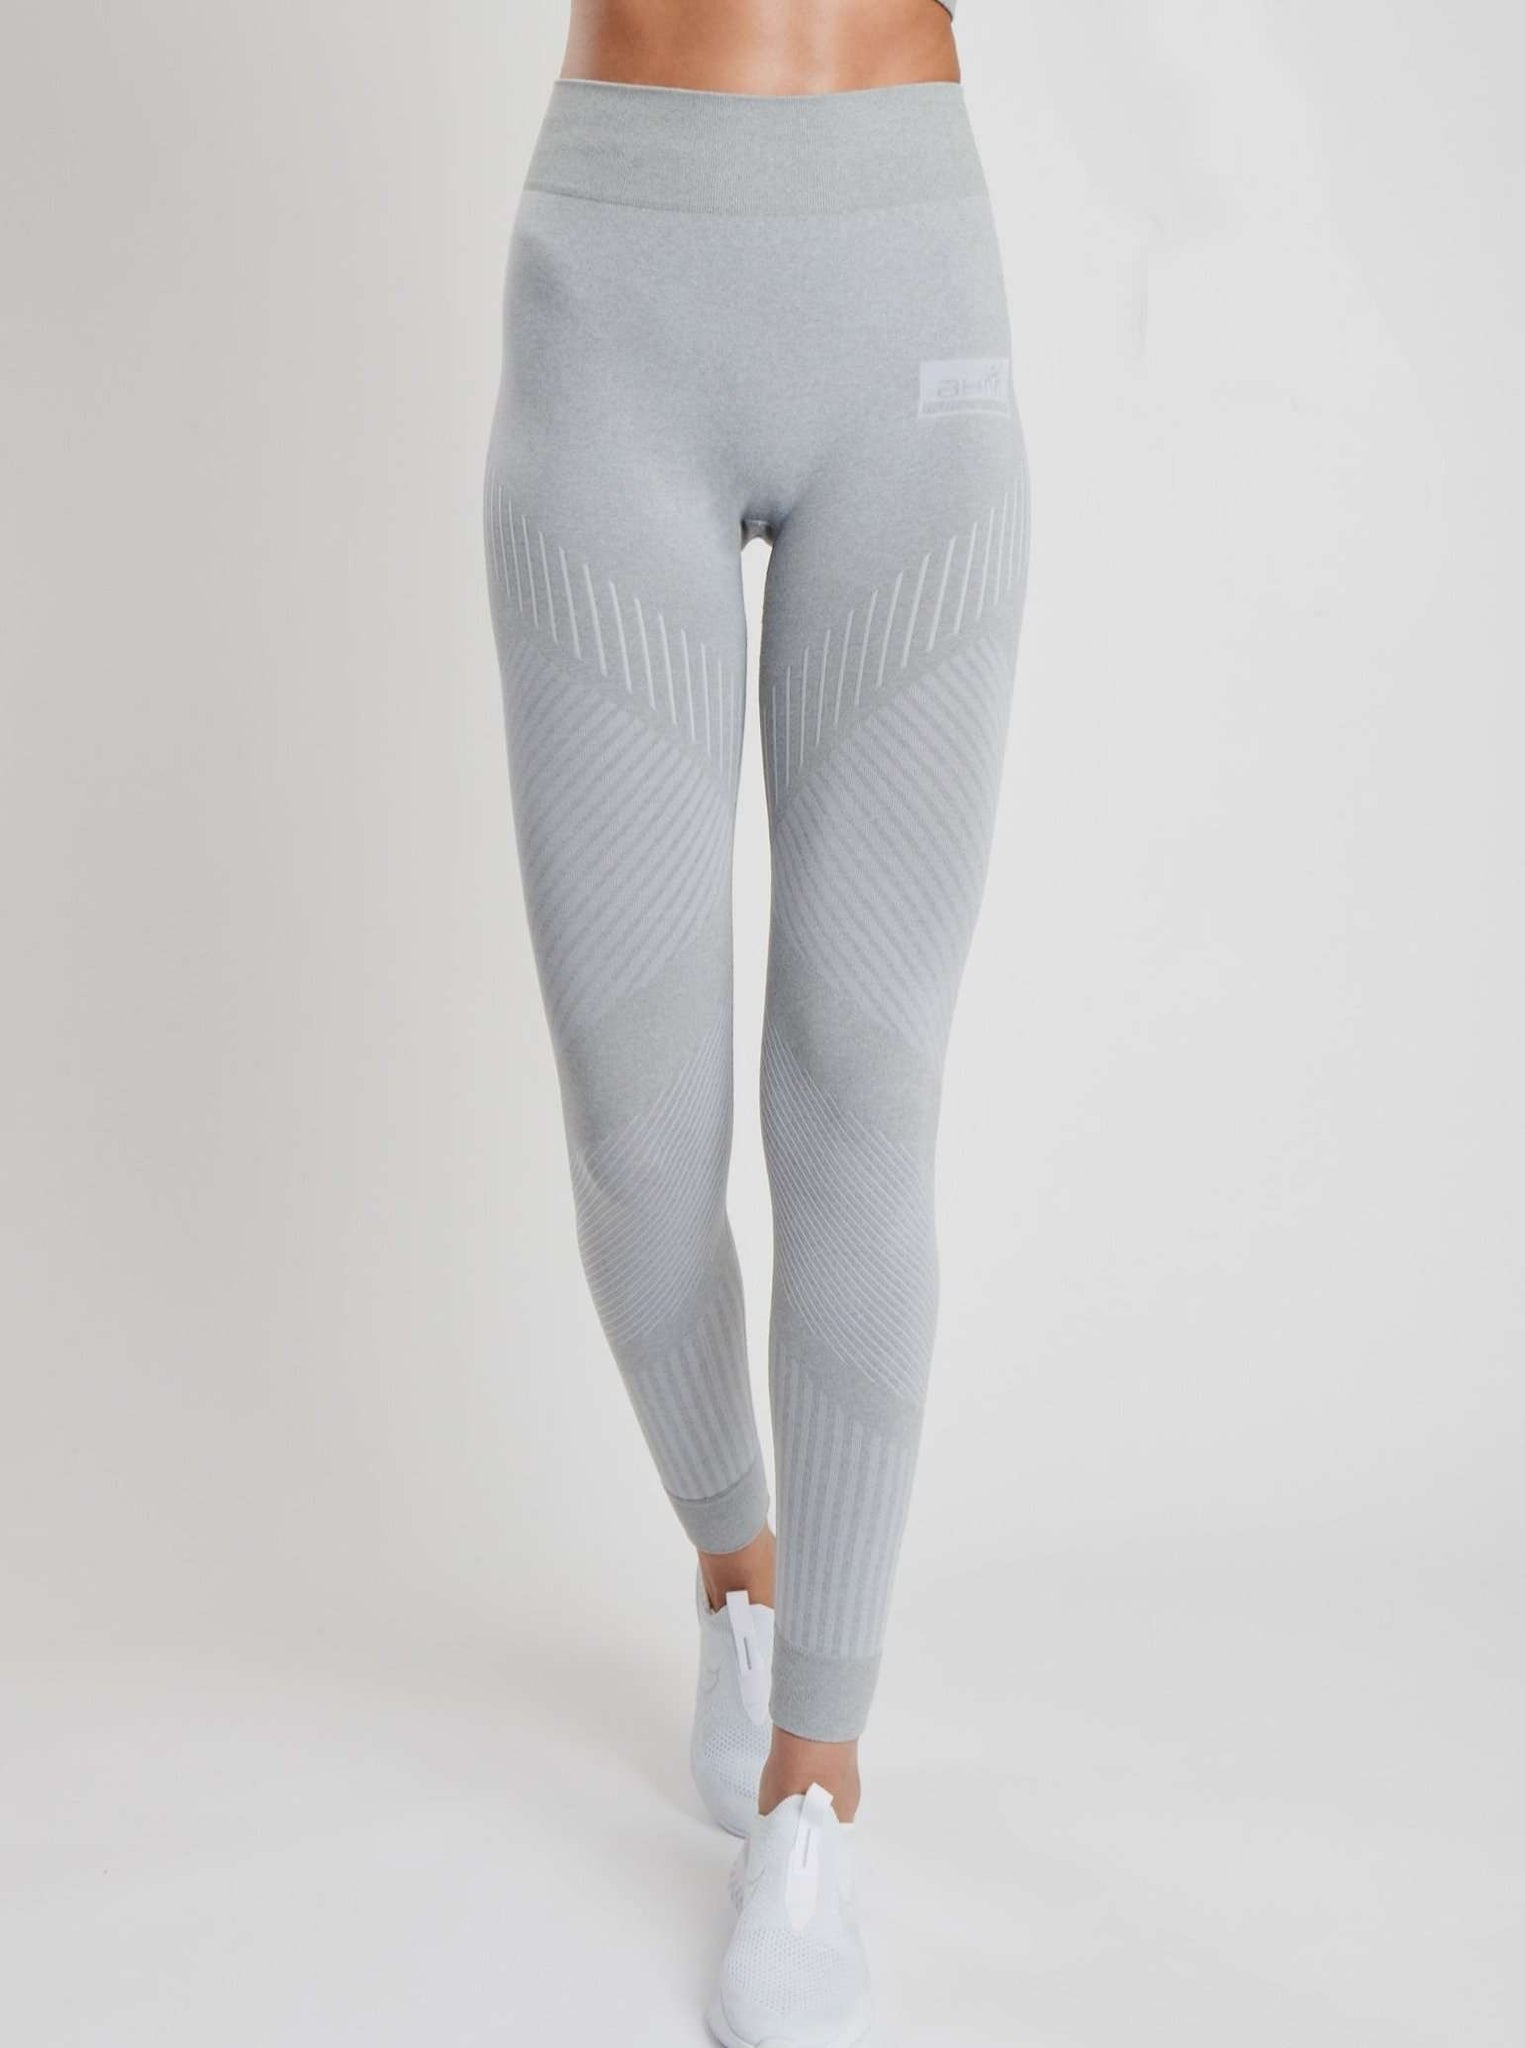 FLOW SEAMLESS LEGGINGS AHMWORLD